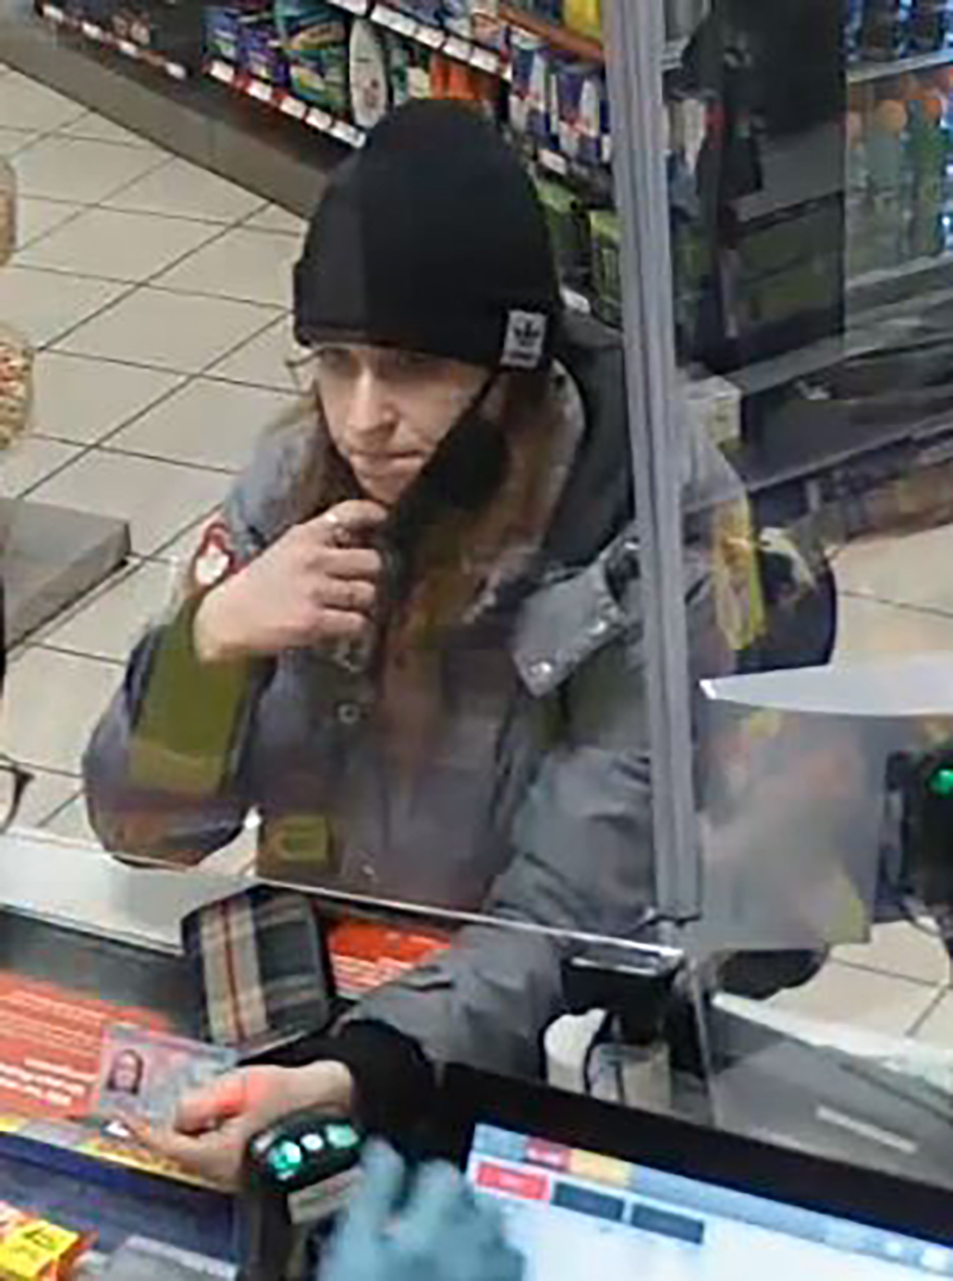 Suspect to Identify: Occurrence #2021-010832